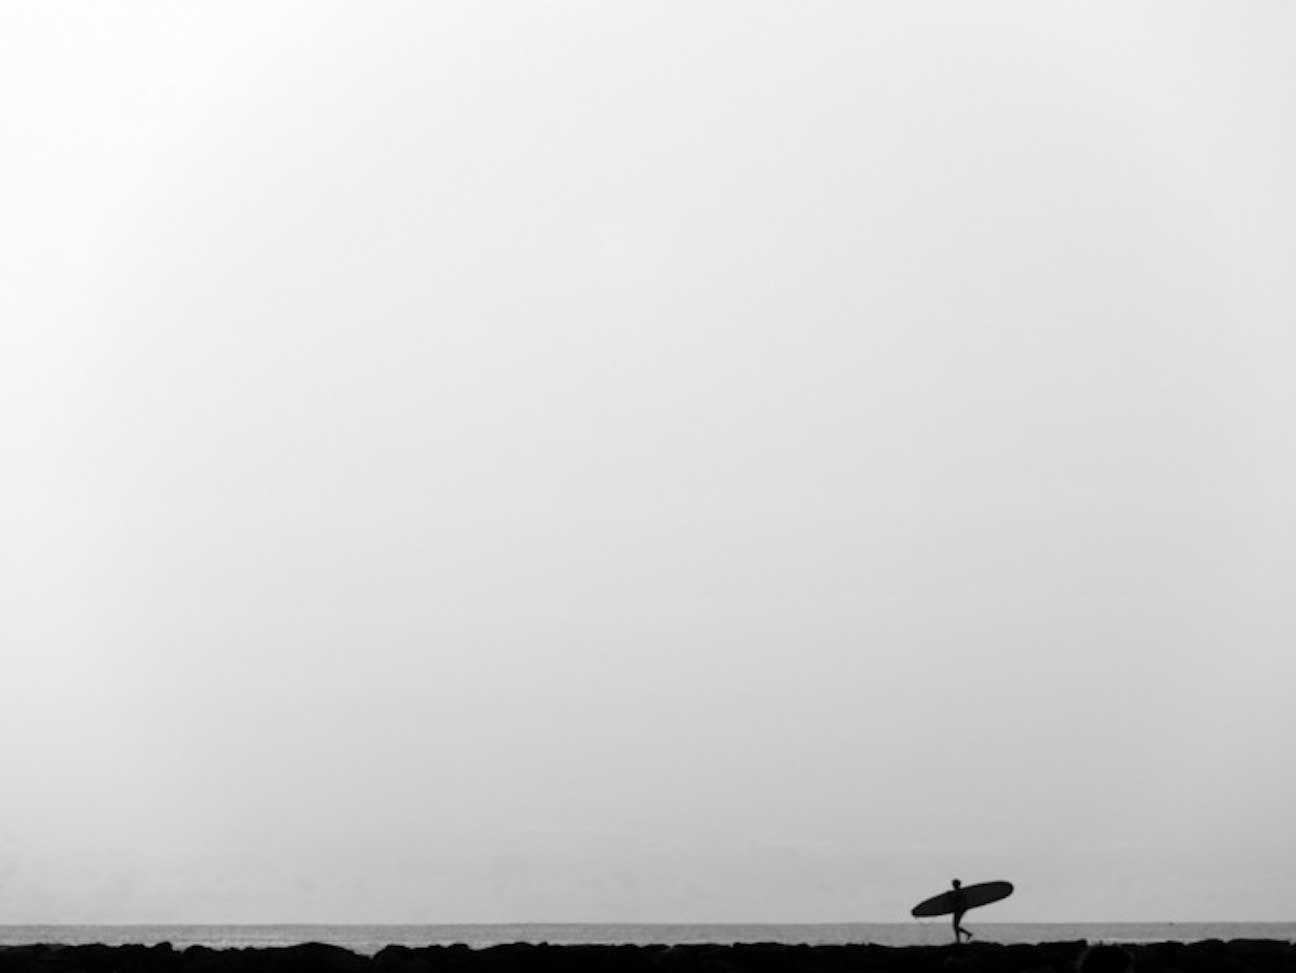 lone(ly) surfer